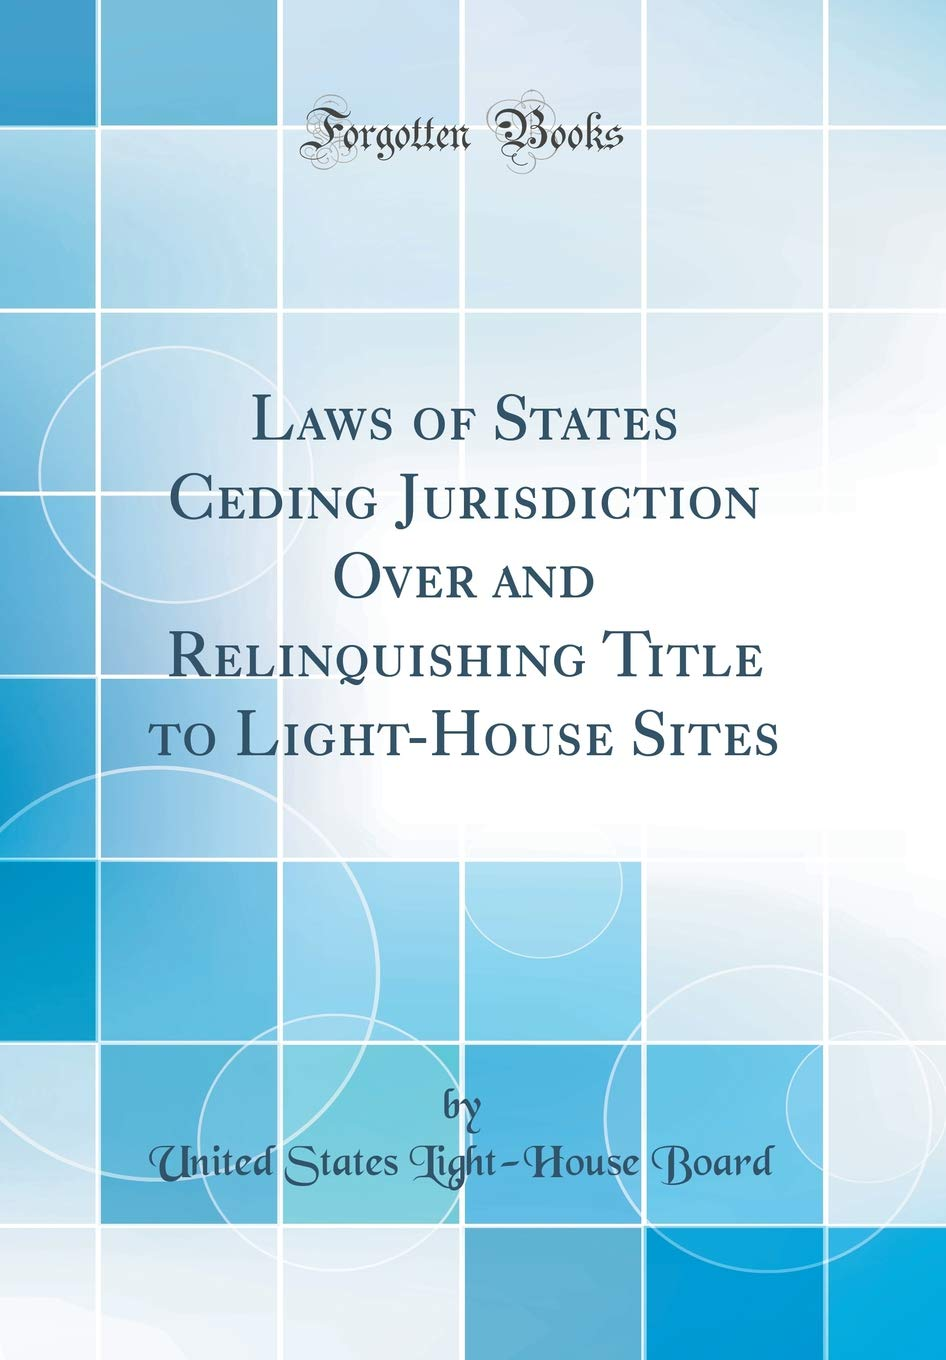 Download Laws of States Ceding Jurisdiction Over and Relinquishing Title to Light-House Sites (Classic Reprint) PDF